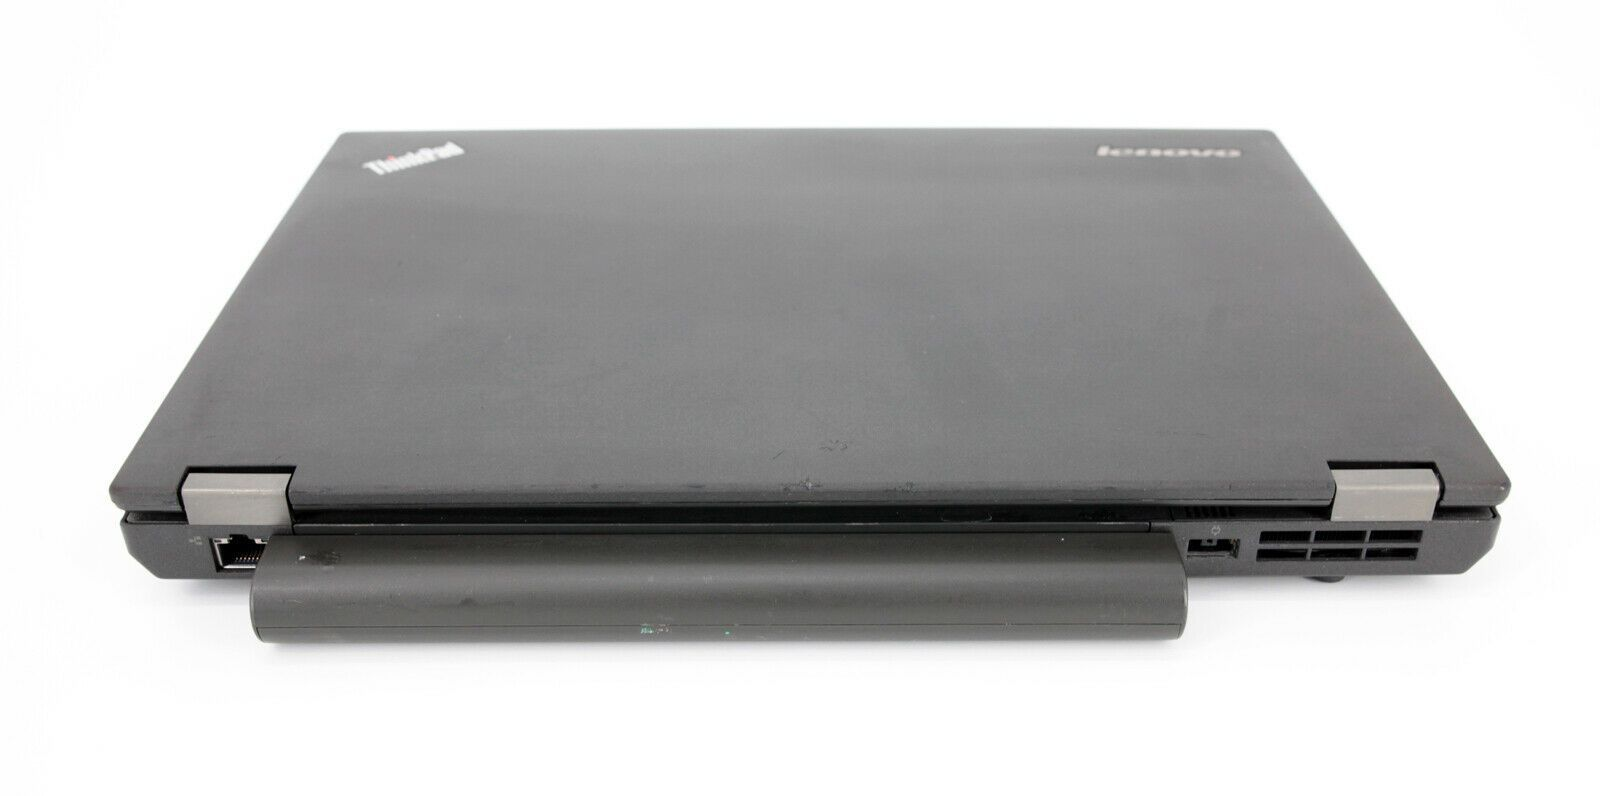 Lenovo ThinkPad T440P Laptop: 4th Gen i7, 480GB, 730M Win 10 (6-month warranty) - CruiseTech